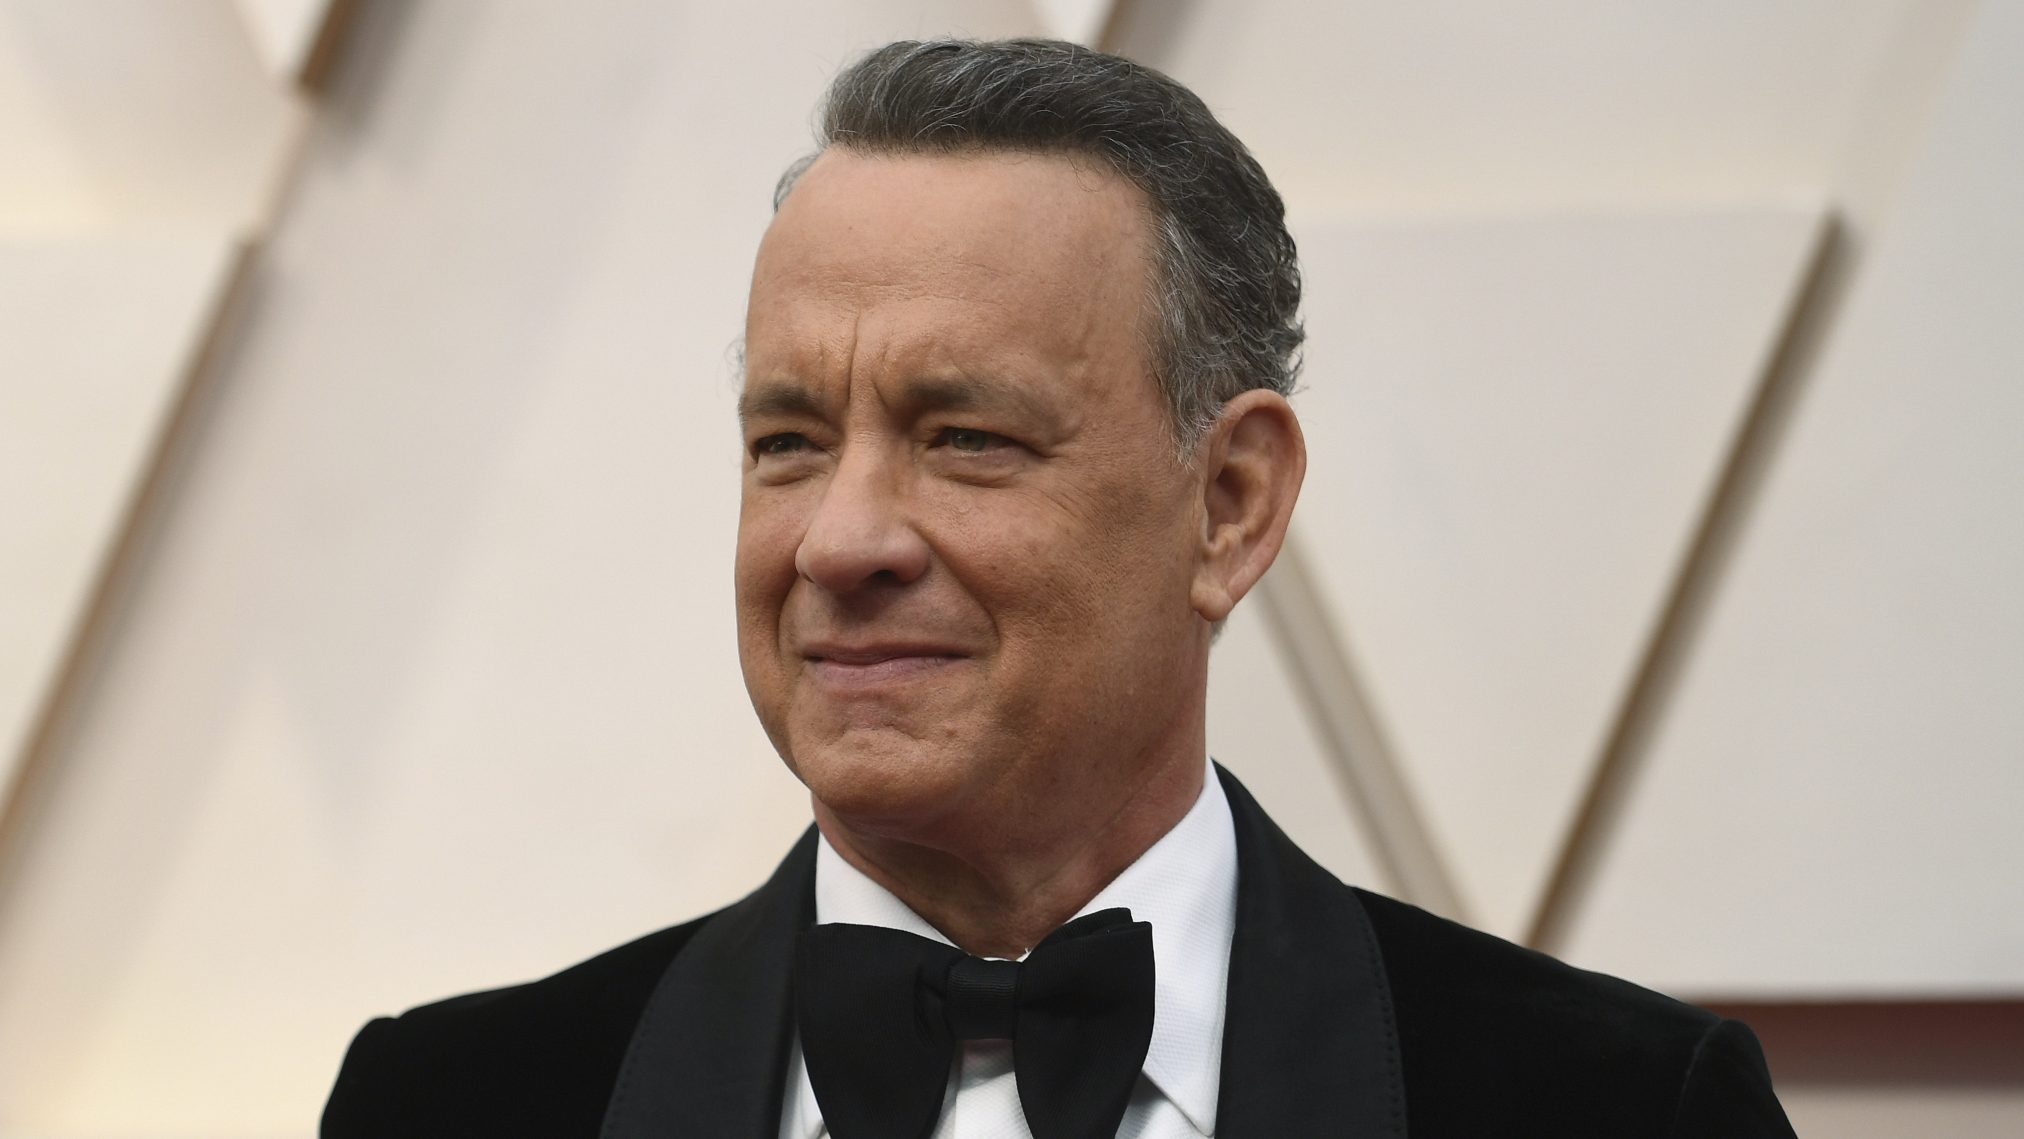 The Complete List of Tom Hanks Movies